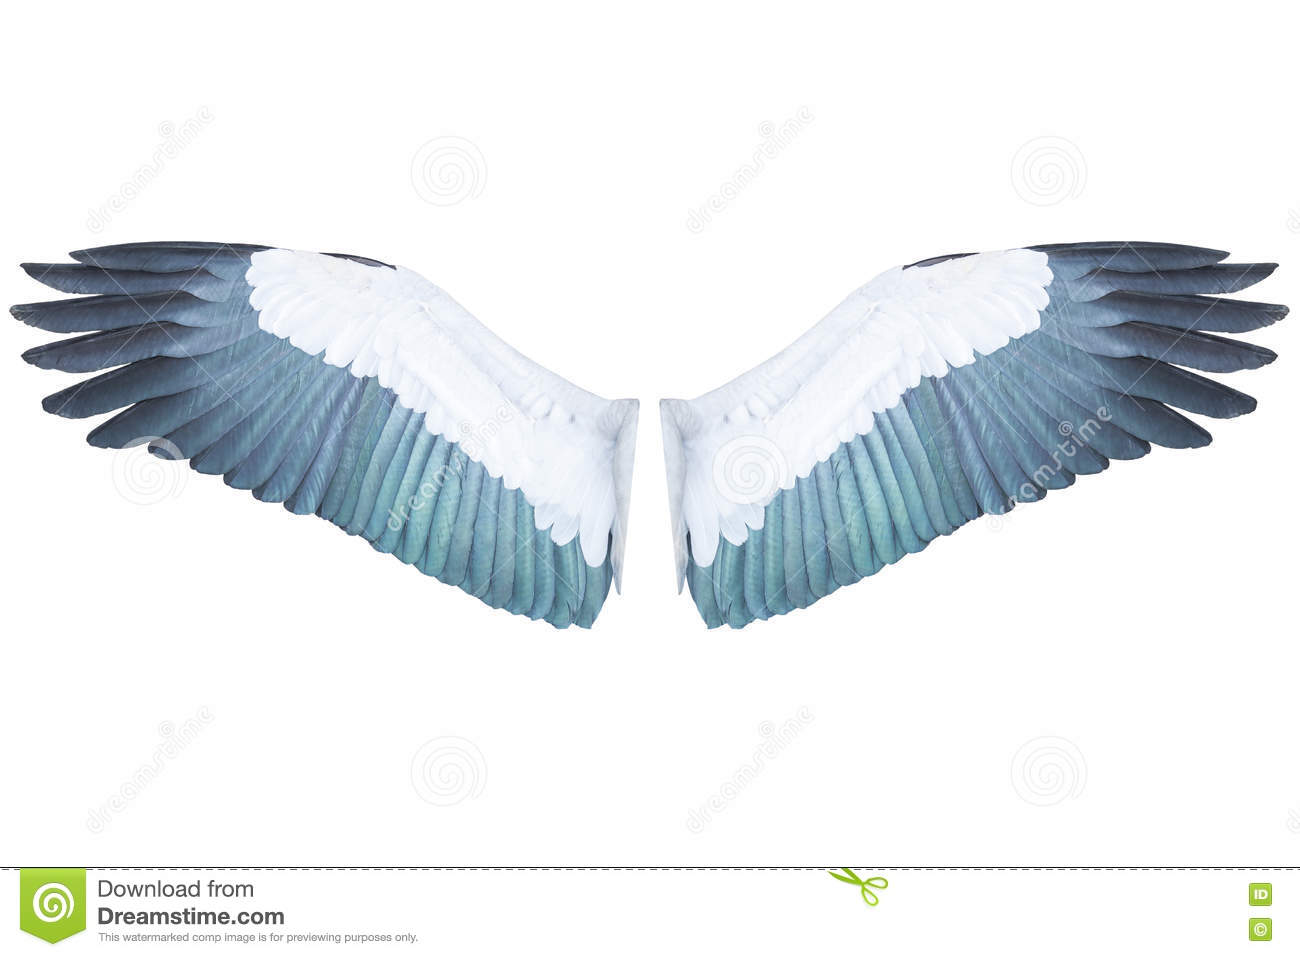 clipping duck wings diagram pioneer deh 1900mp wiring bird isolated on white background stock photo